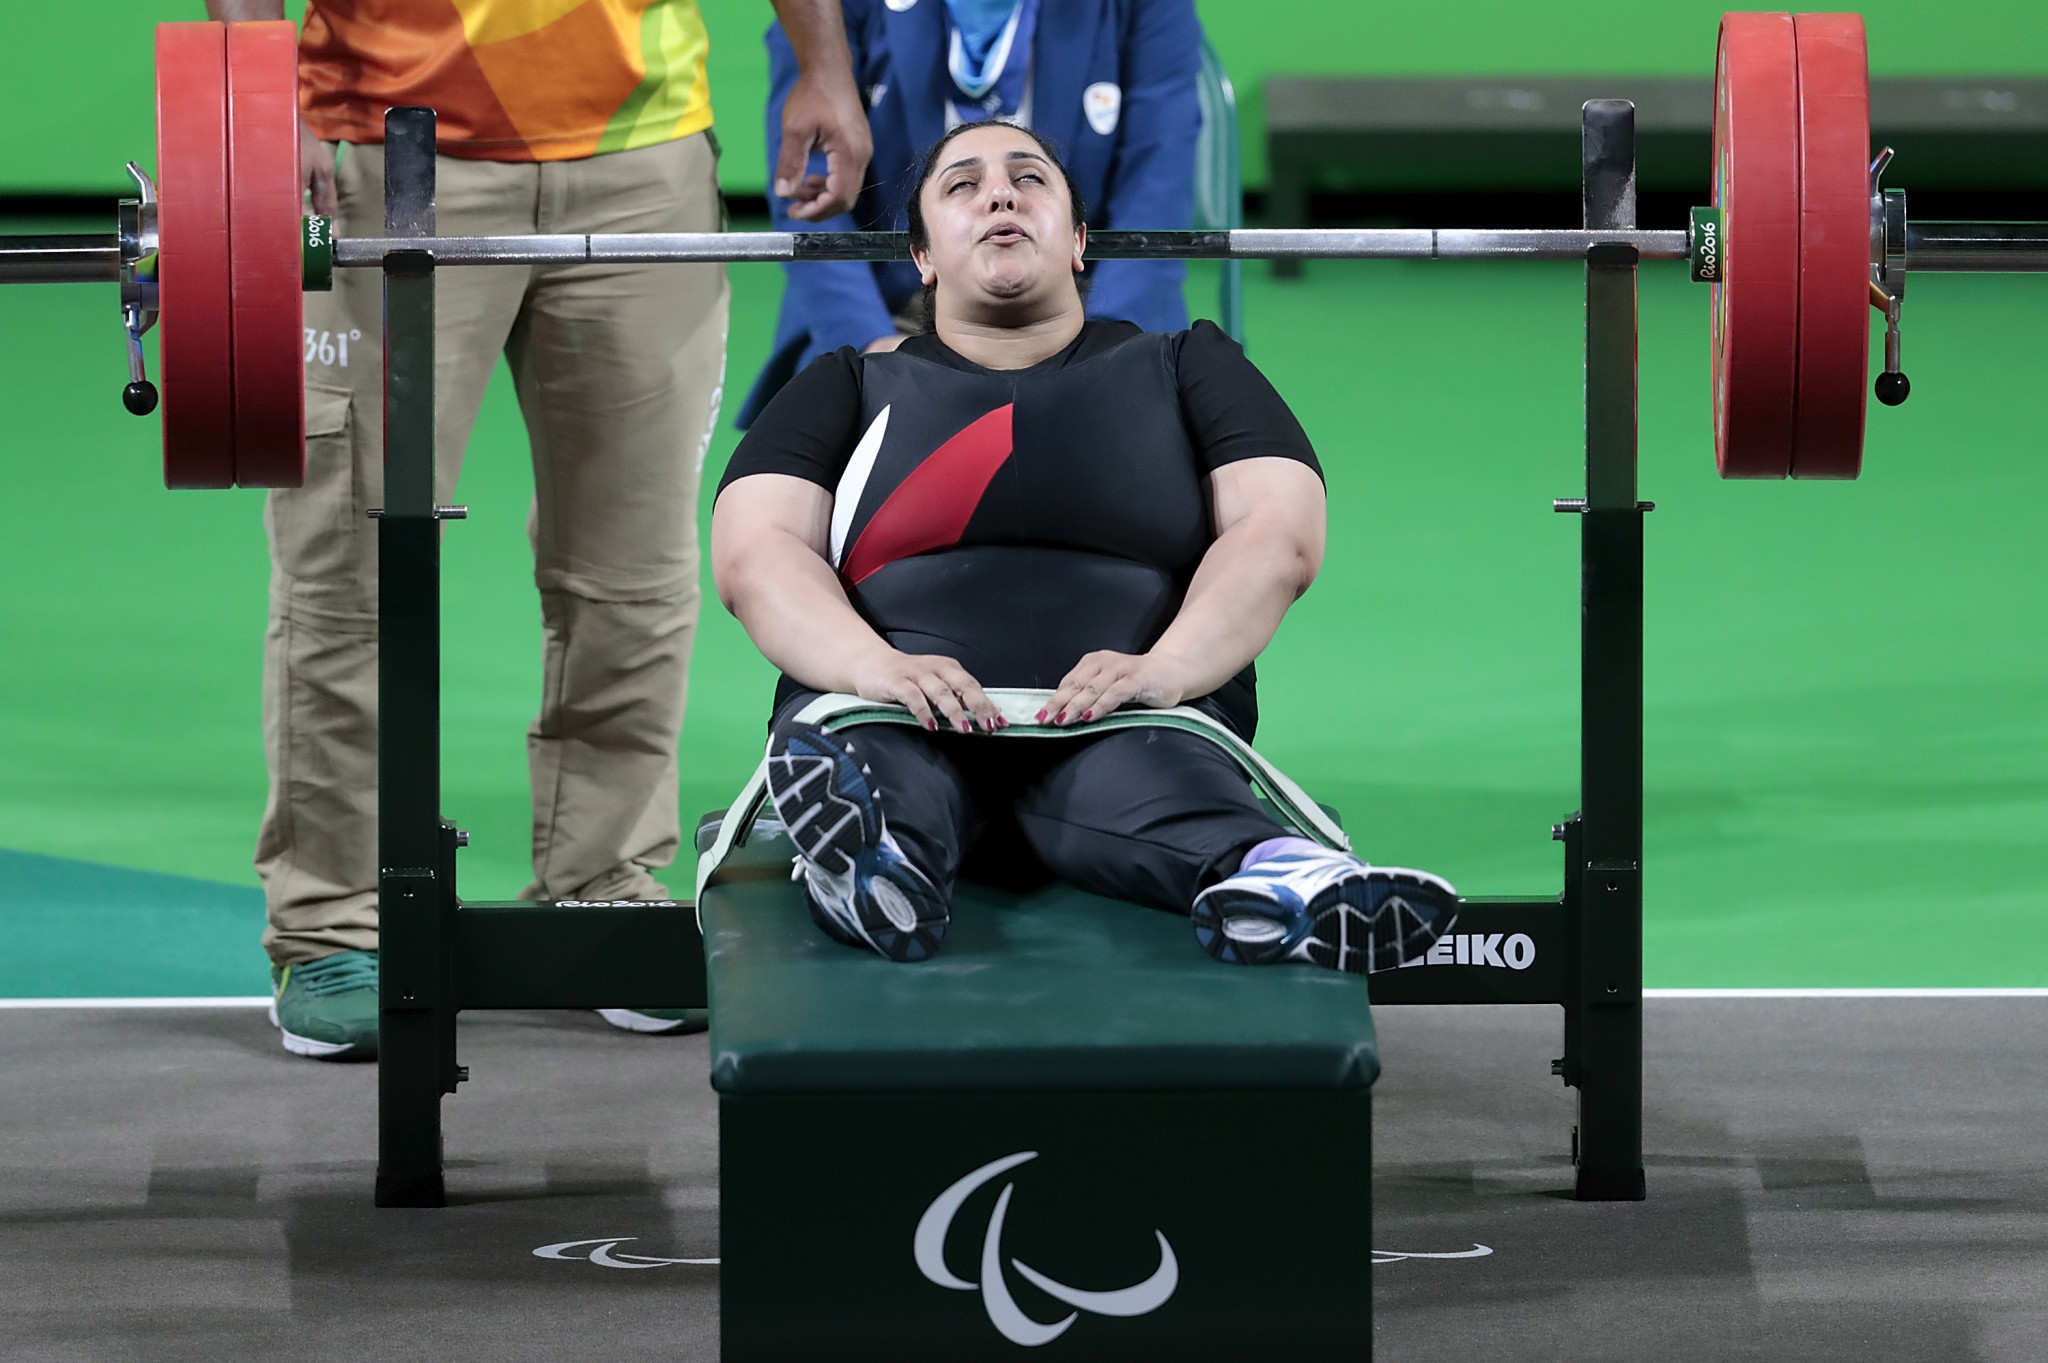 Paralympic champion Mahmoud among winners on final day of World Para Powerlifting World Cup